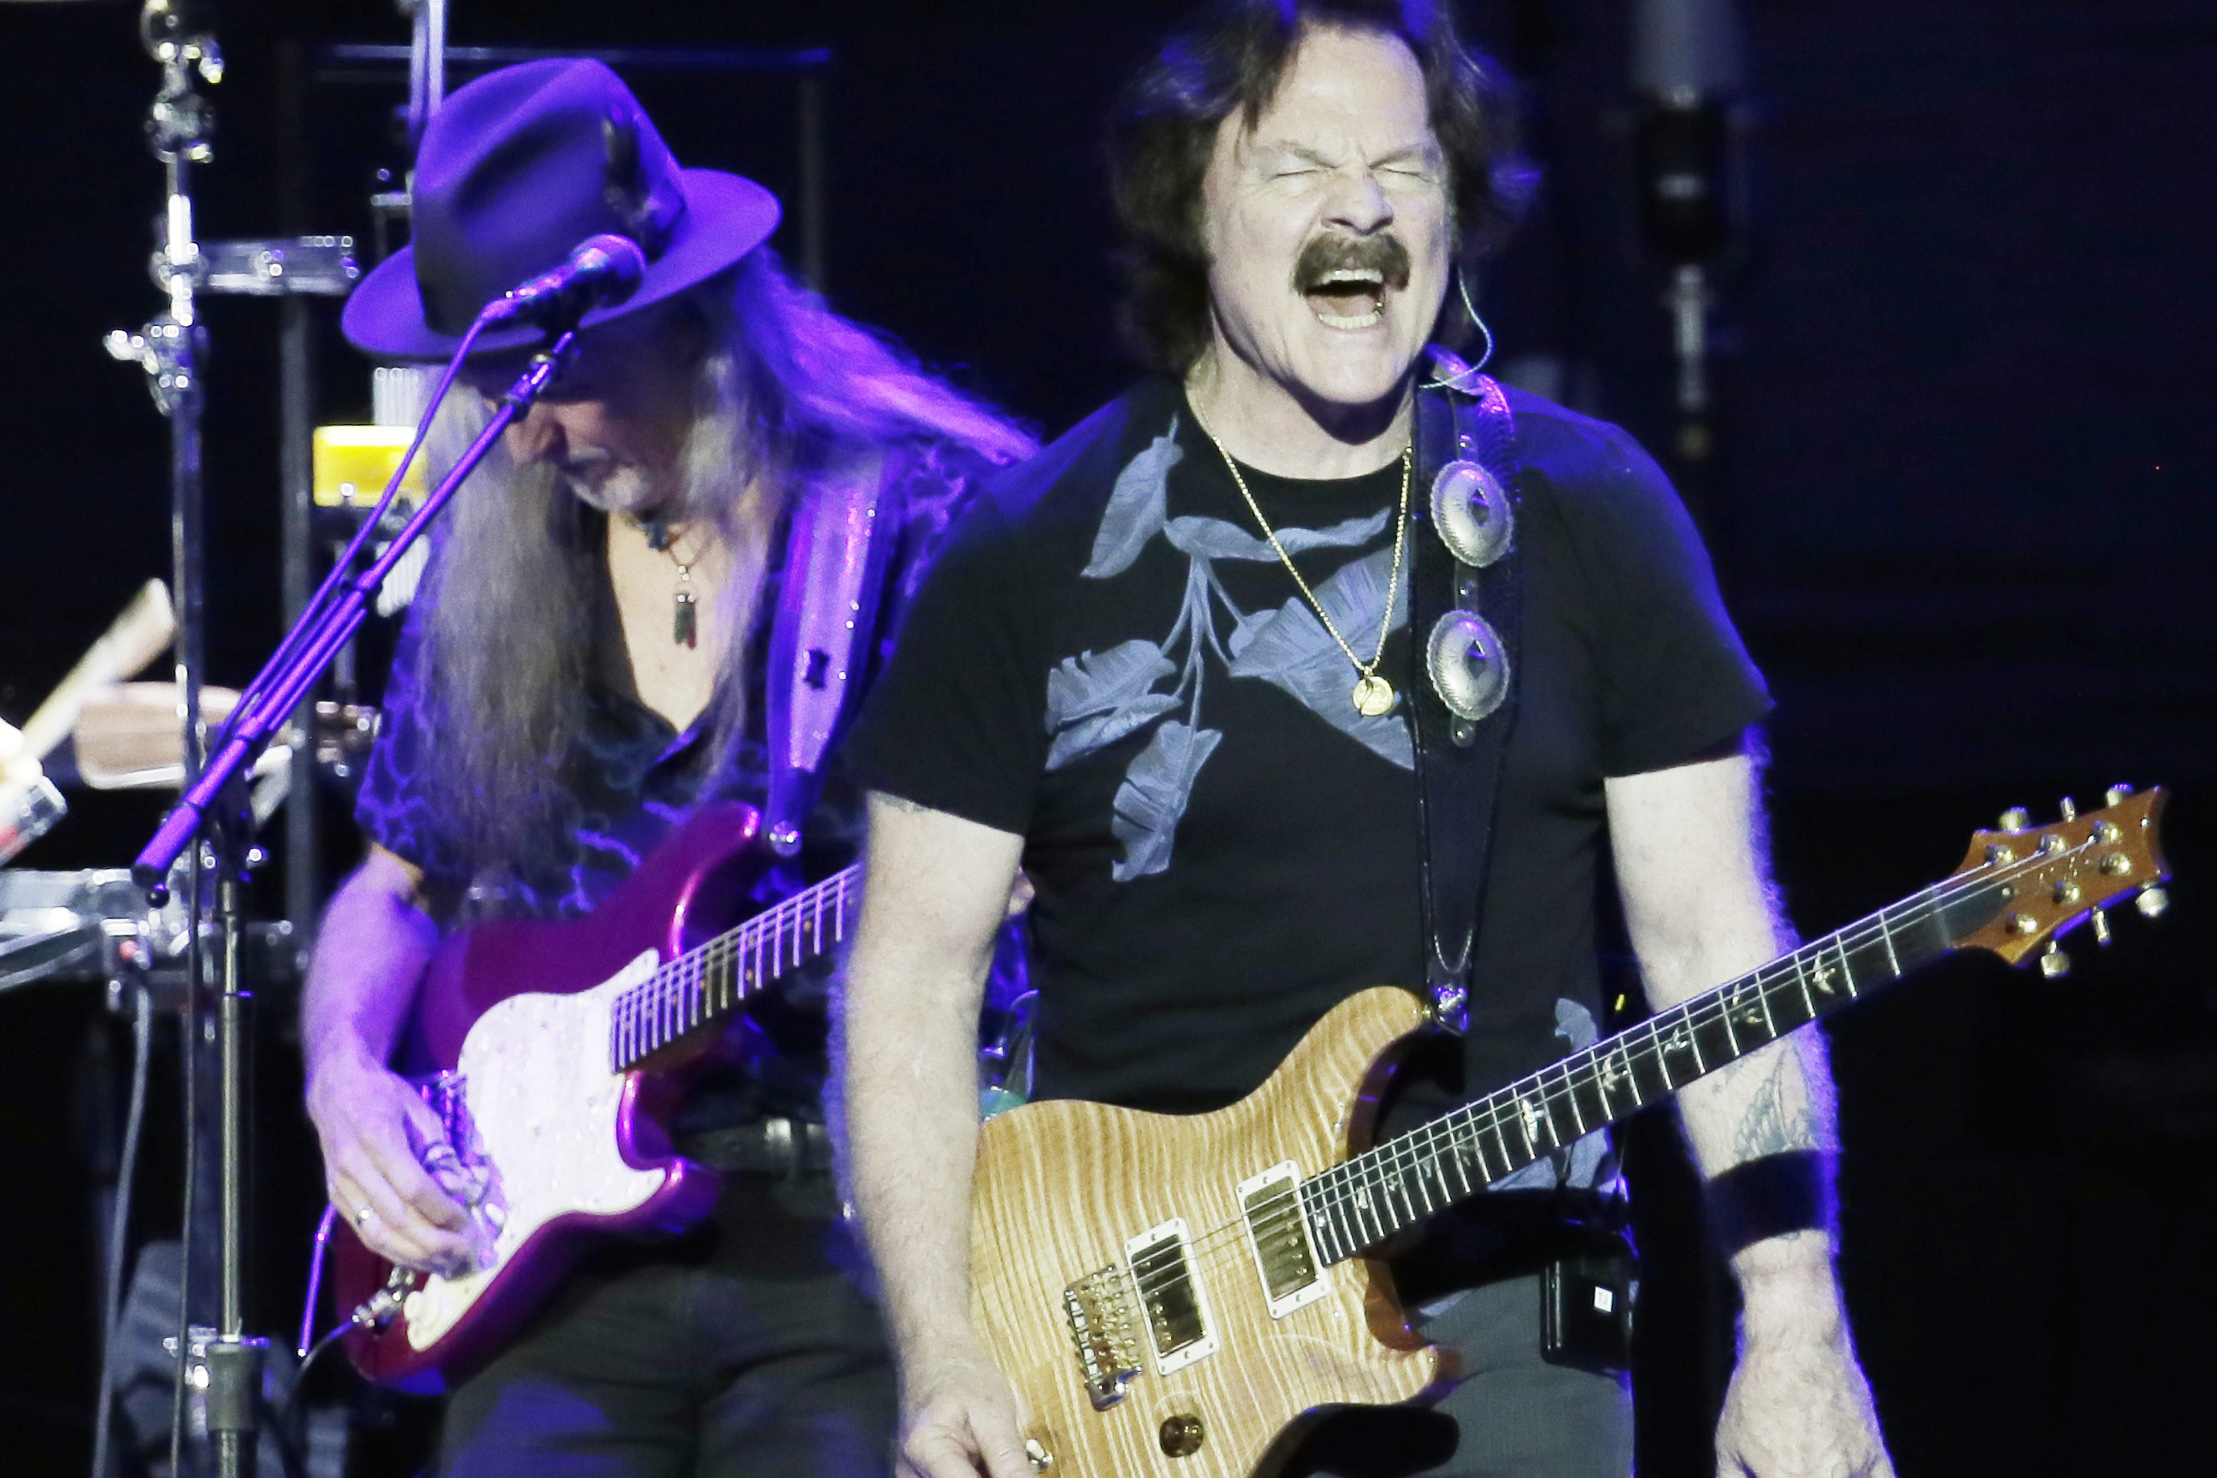 Pat Simmons (left) and Tom Johnston of the Doobie Brothers perform at the BB&T Pavilion in Camden, NJ on July 11, 2018. ELIZABETH ROBERTSON / Staff Photographer